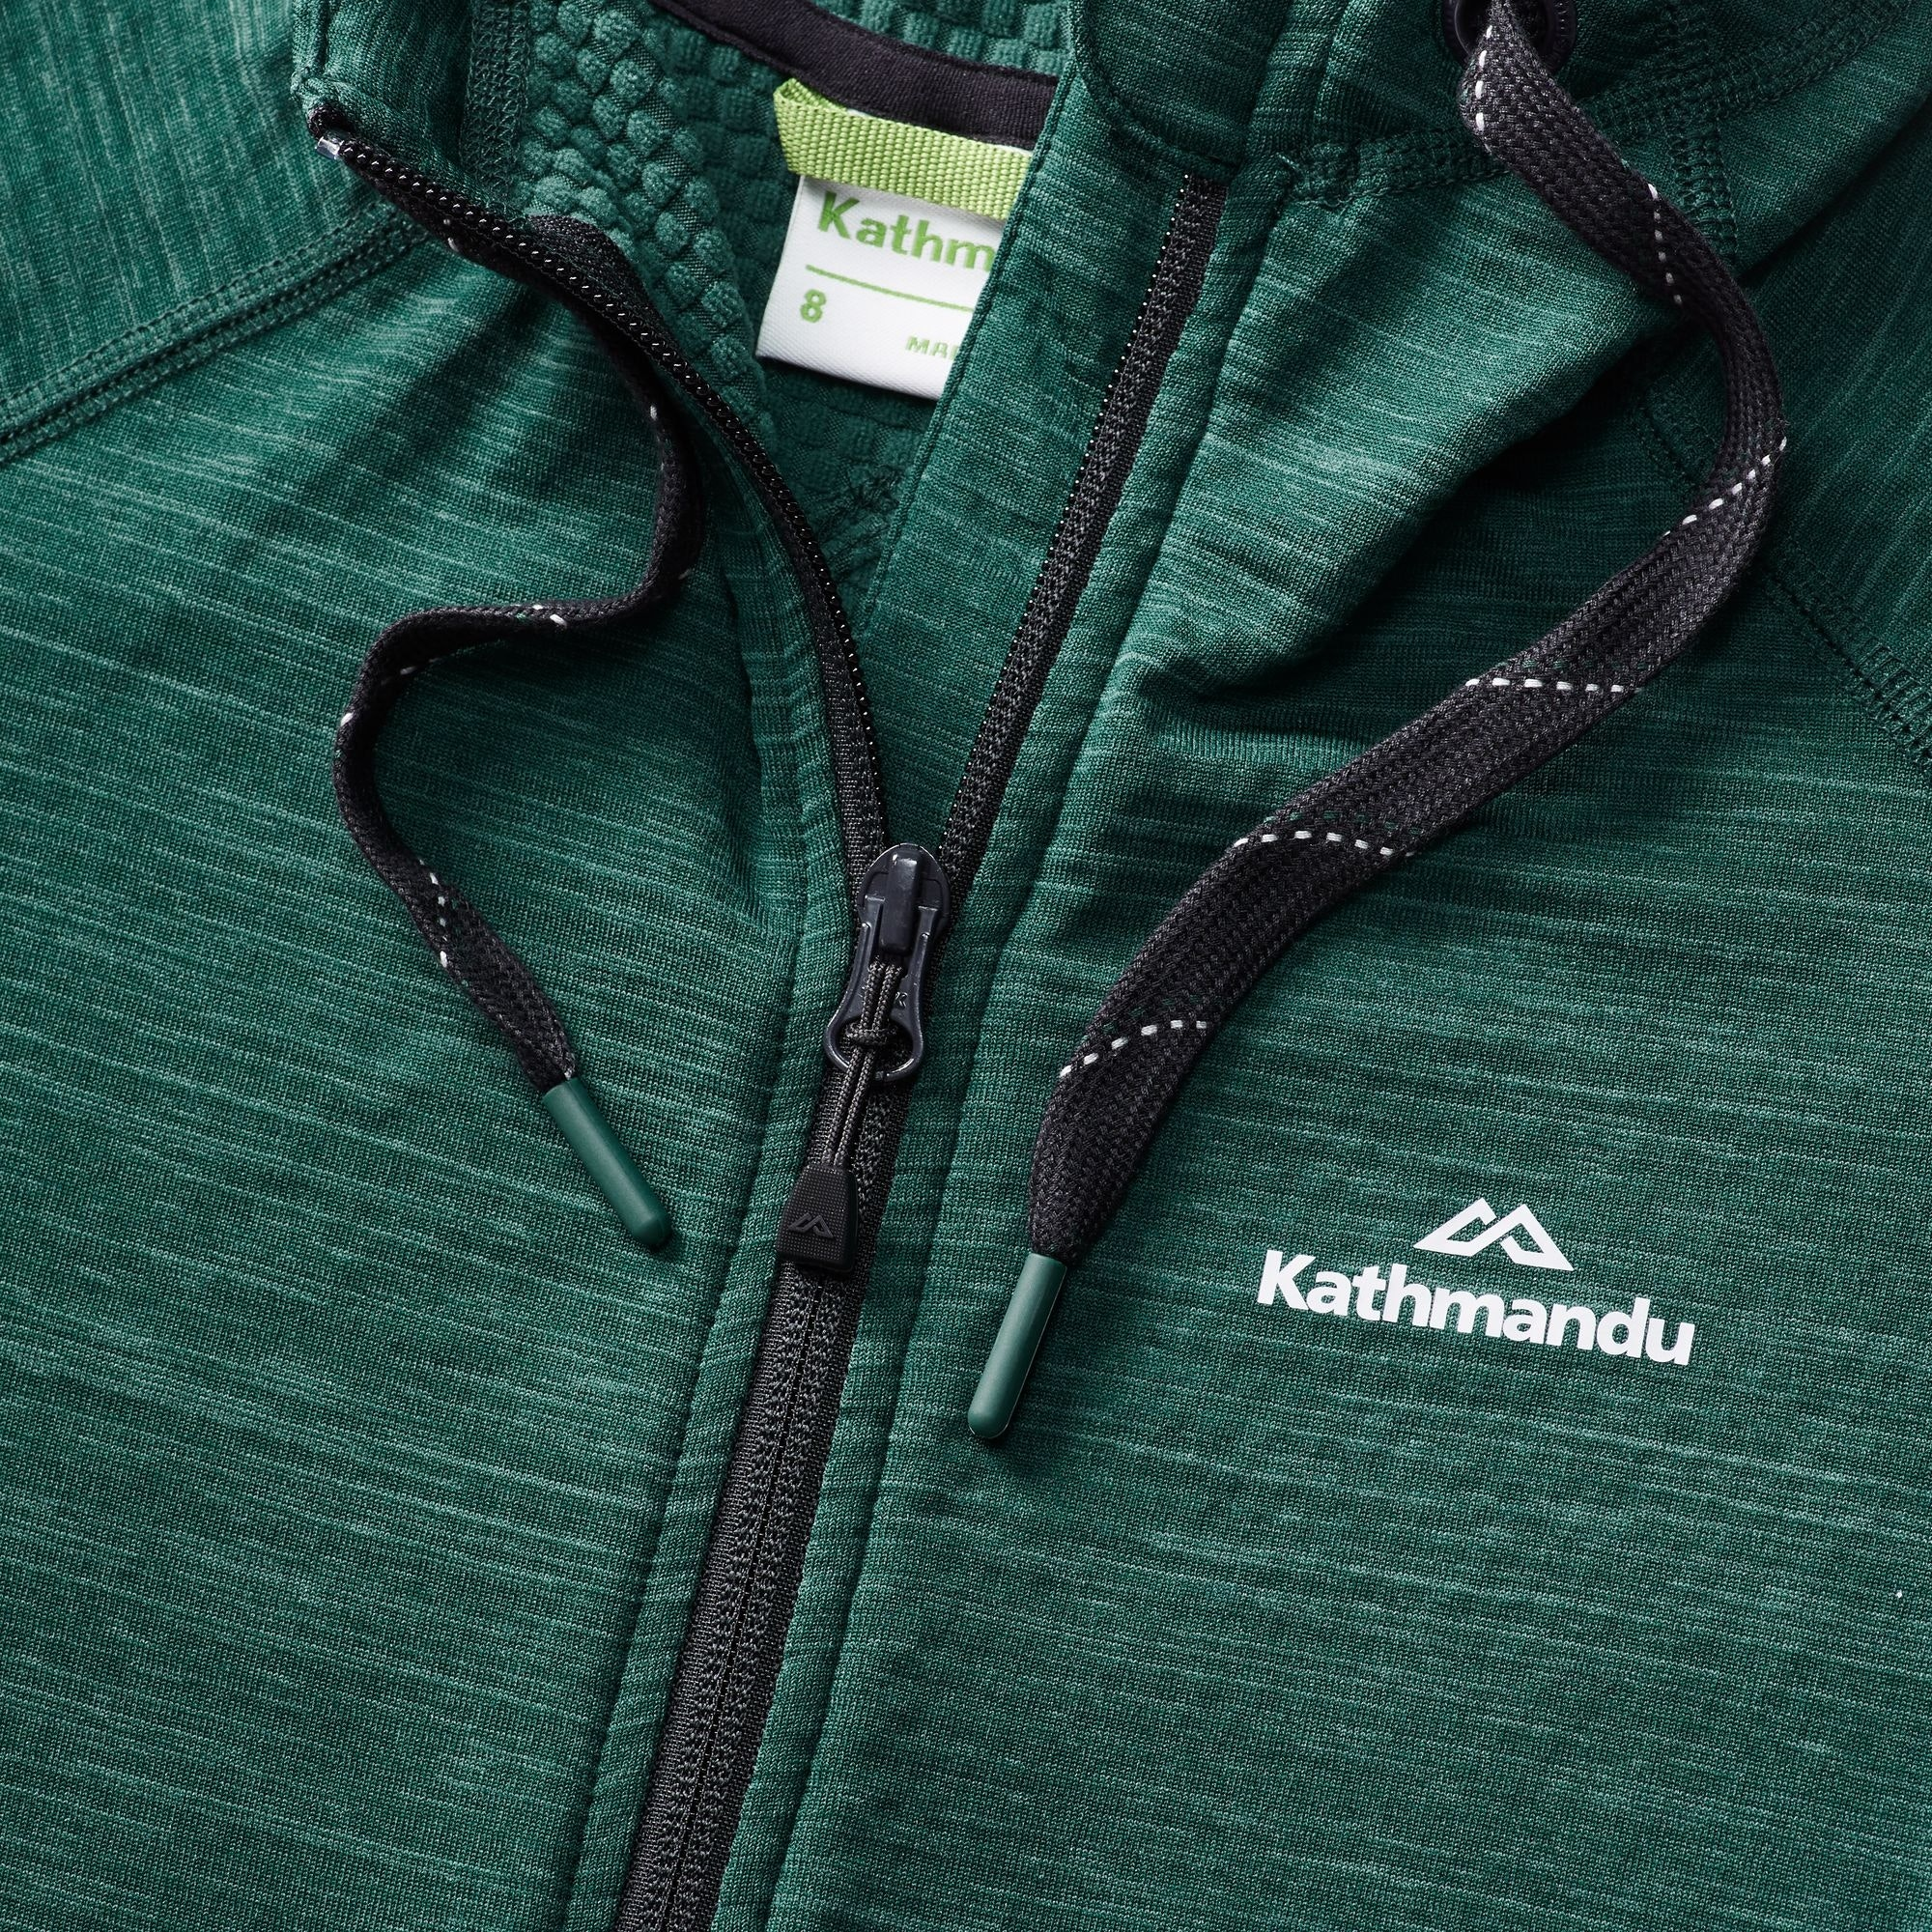 NEW-Kathmandu-Acota-Women-s-Hooded-Fleece-Lightweight-Breathable-Outdoor-Jacket thumbnail 9